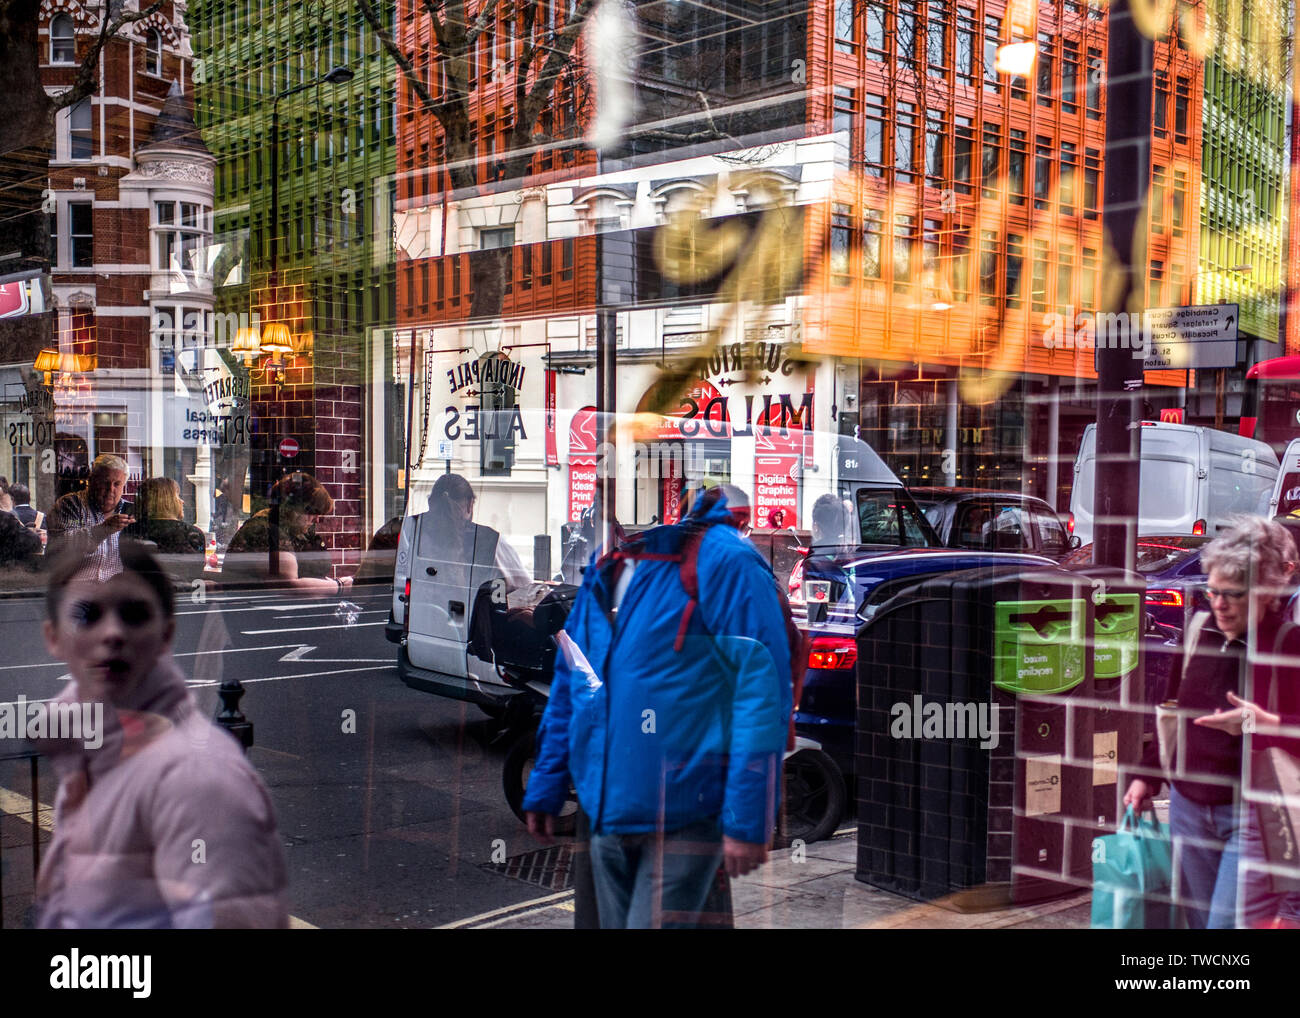 multiple reflections of a busy city in shop window. Stock Photo